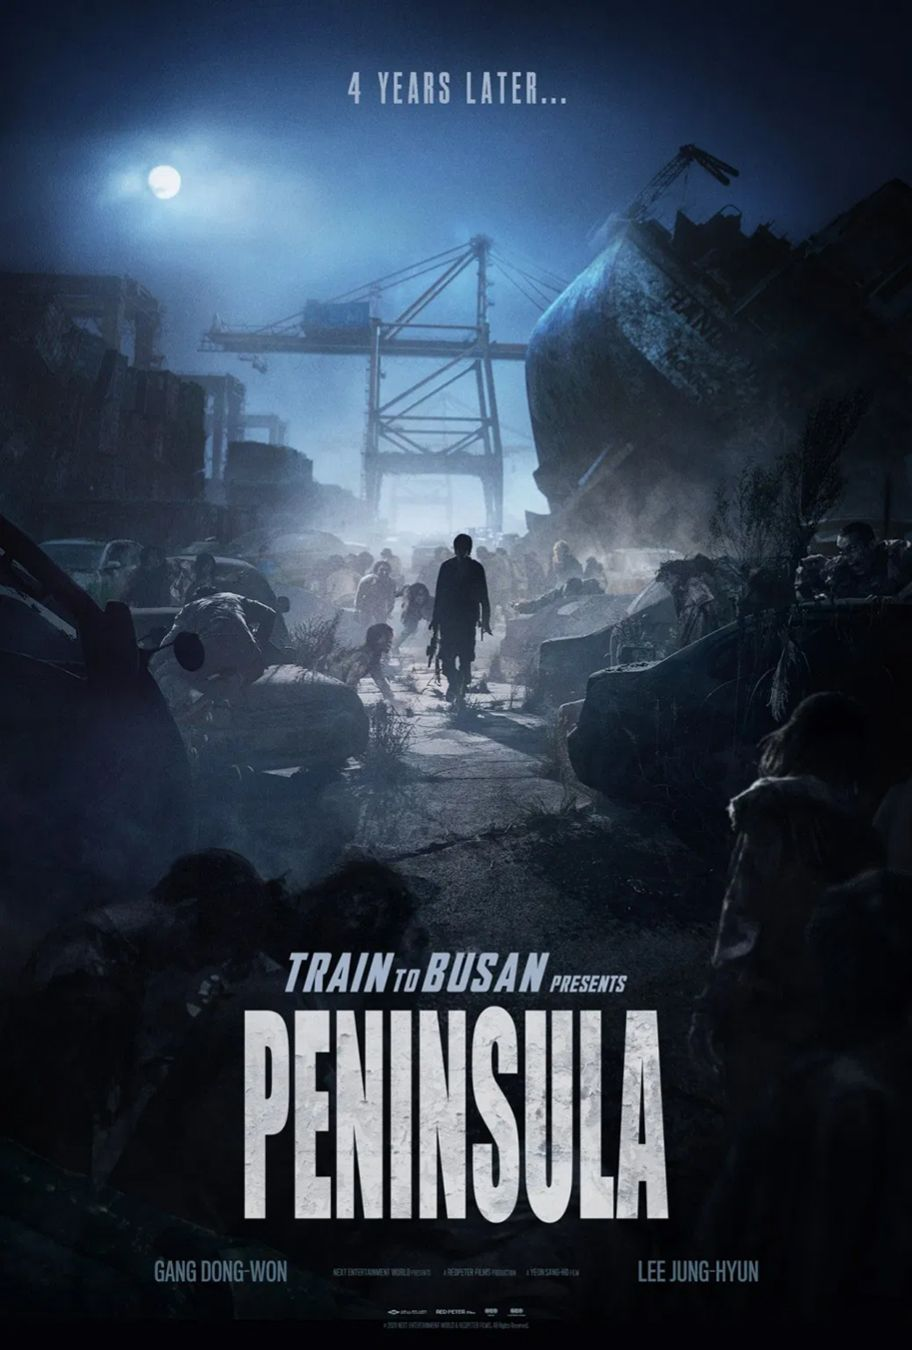 Trailer za Korejski 'Train To Busan' zombi nastavak 'Peninsula' je napokon stigao